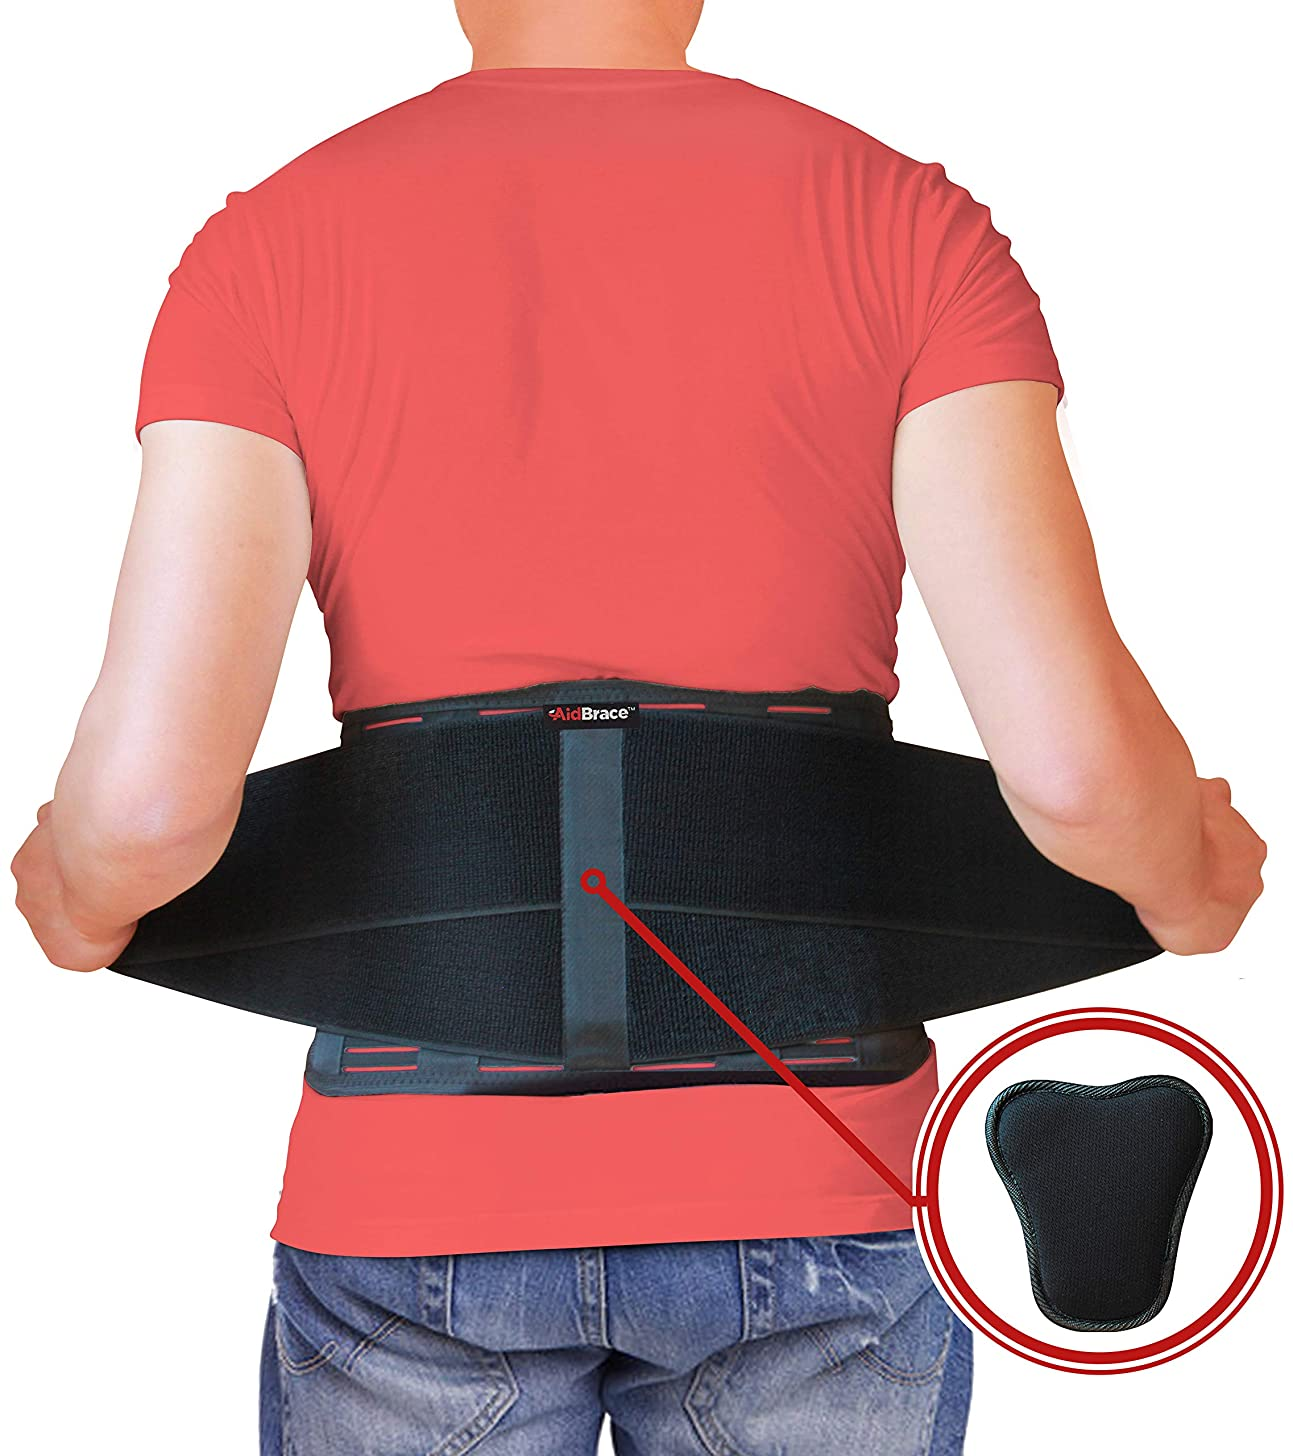 AidBrace Back Brace Support Belt - Lower Back Pain Relief for Herniated Disc, Sciatica, and Scoliosis for Men & Women - Includes Removable Lumbar Pad (L/XL)